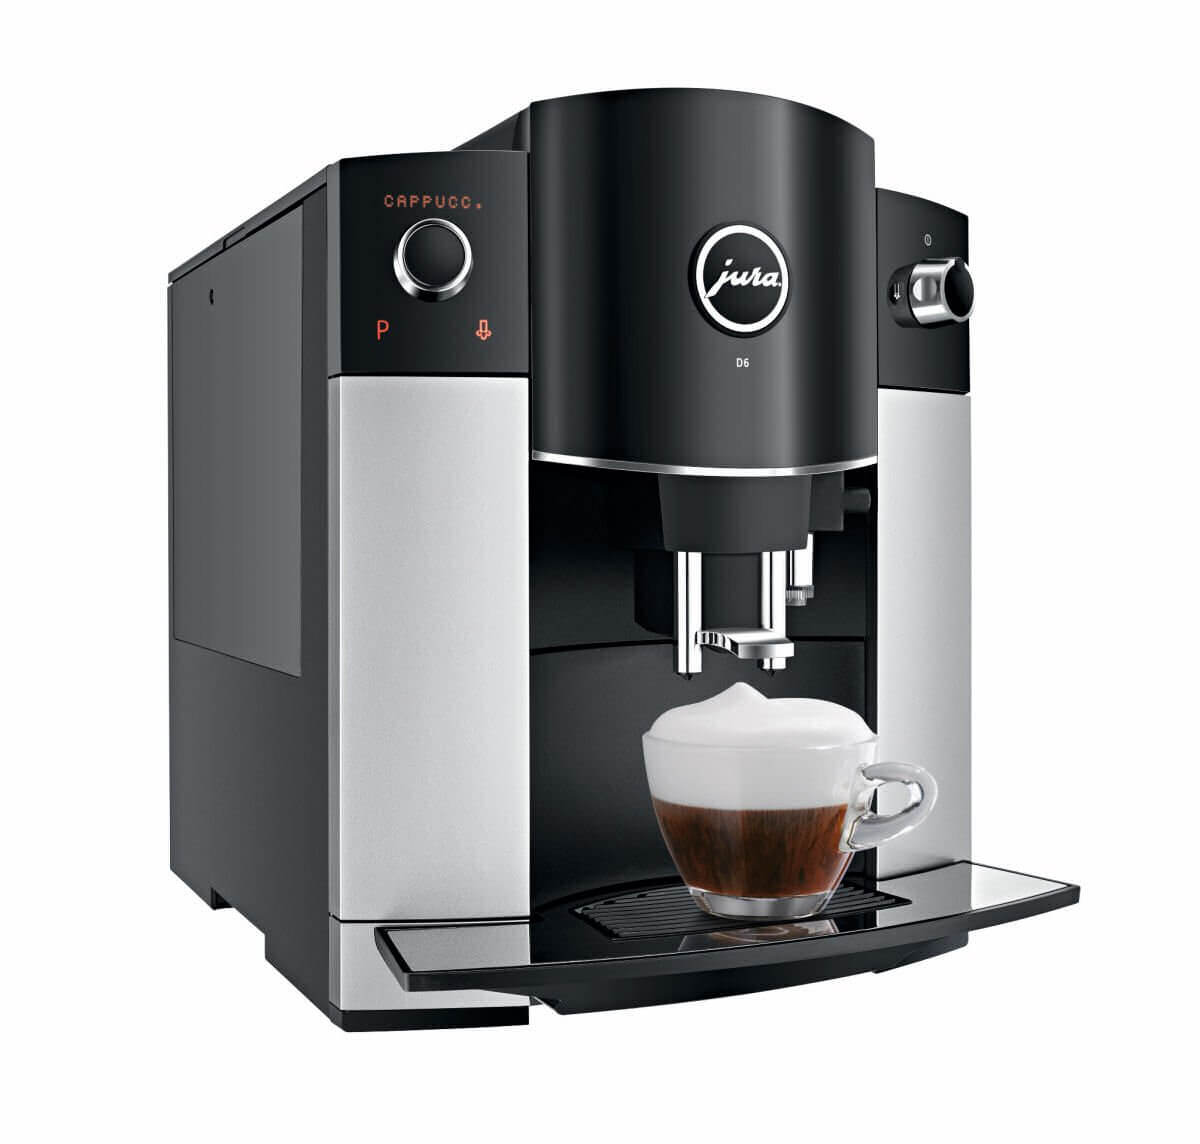 jura d6 machine cafe automoatique 15181 platine  3